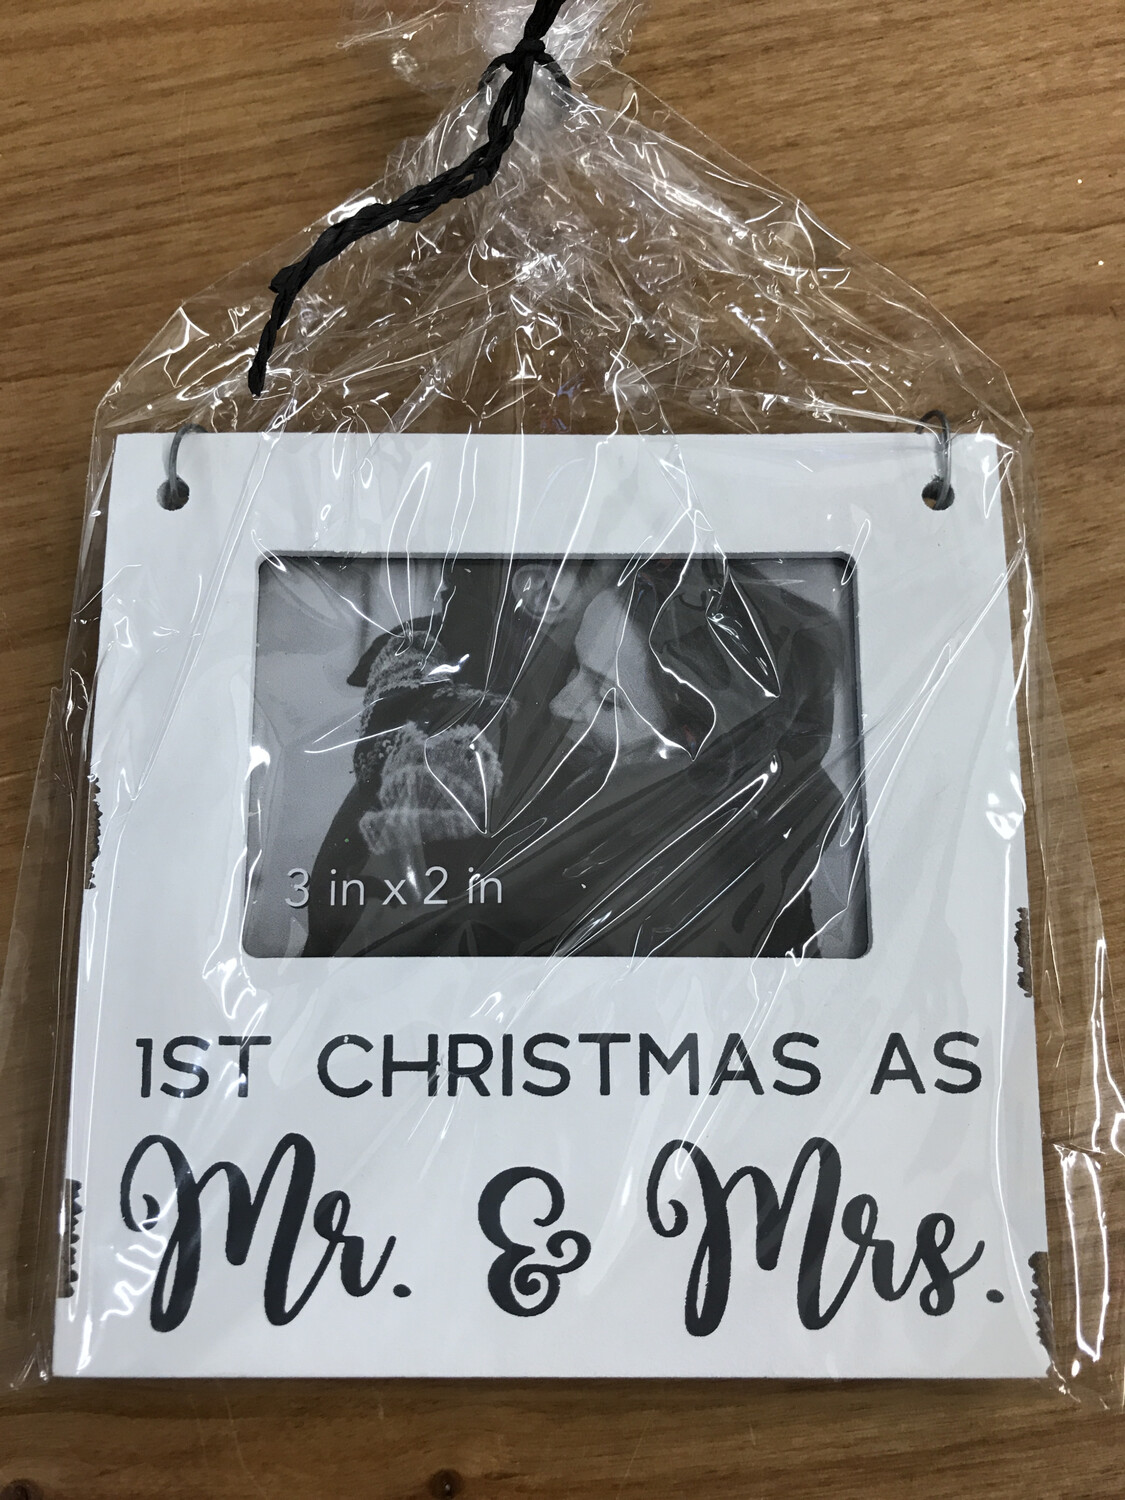 1st Christmas as Mr & Mrs